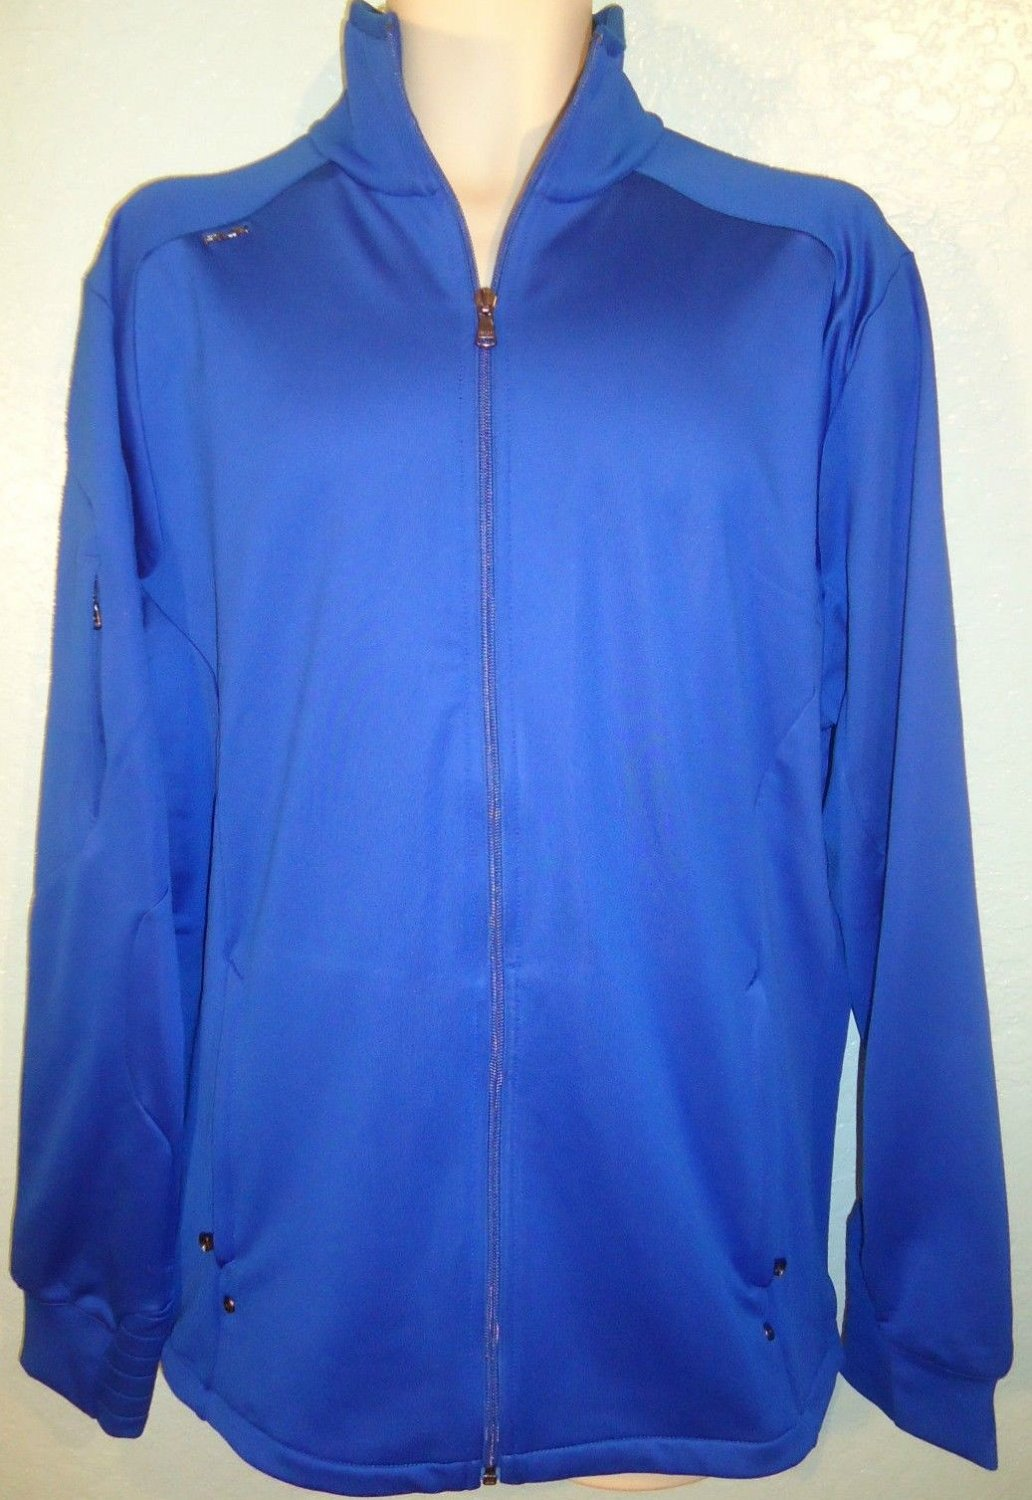 RALPH LAUREN - RLX - XL - BLUE - ZIPPER - GOLF - TRACK - SPORT - JACKET - NEW